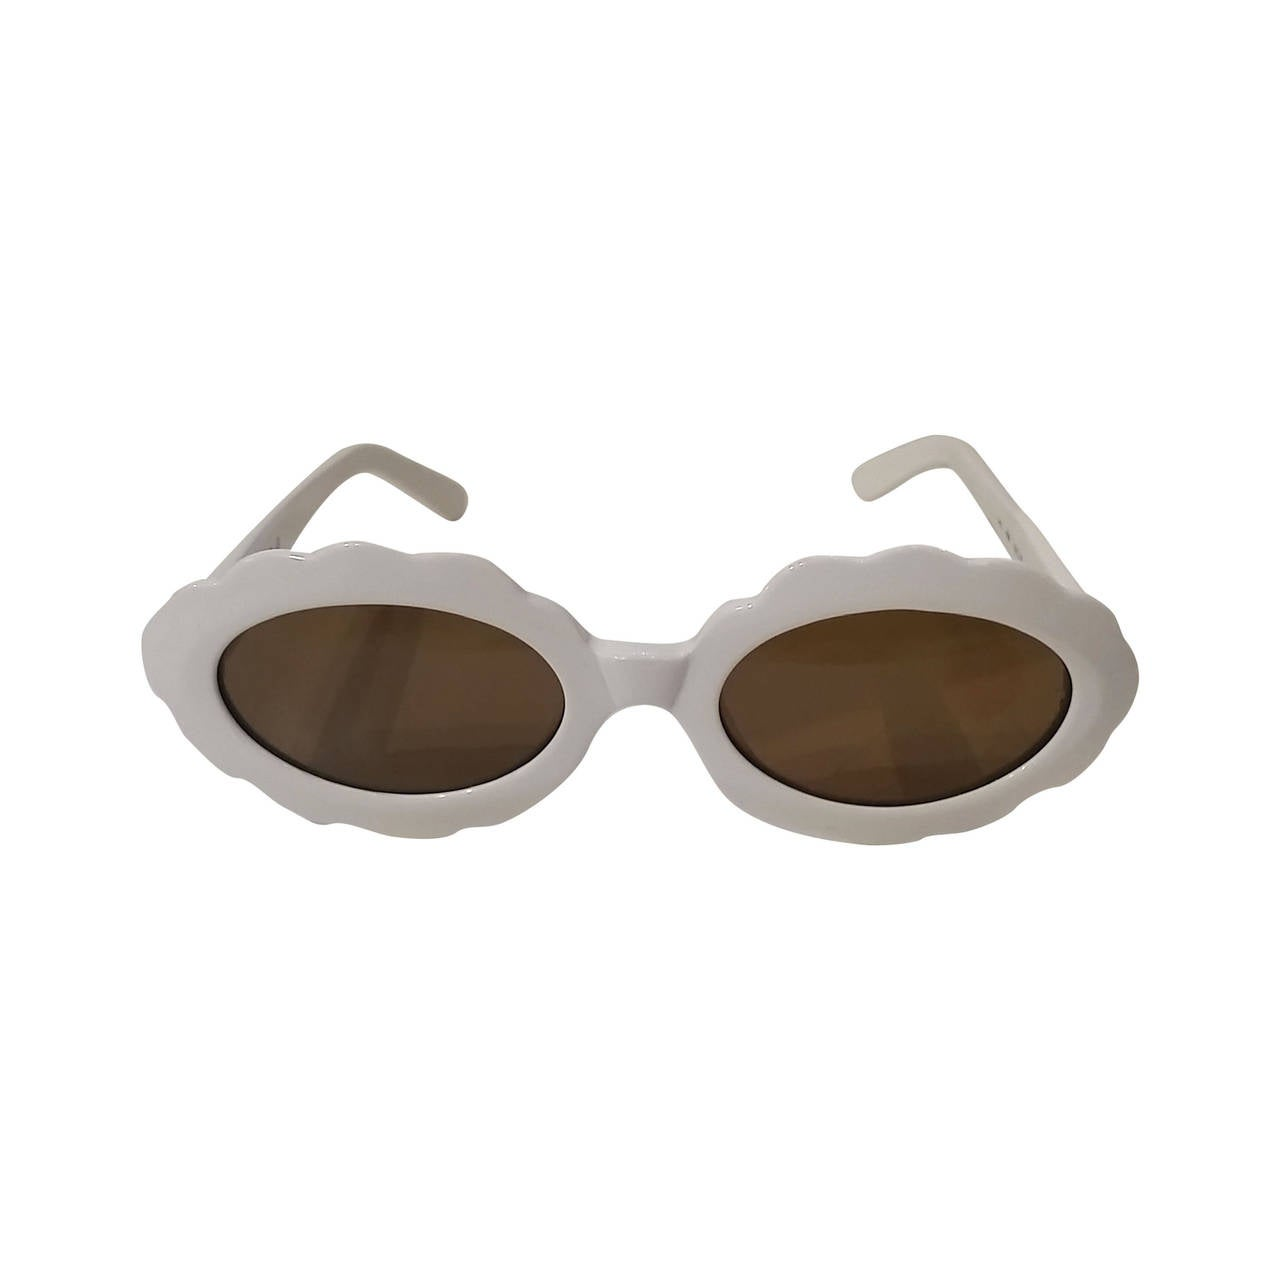 1980s Moschino by Persol white sunglasses at 1stdibs